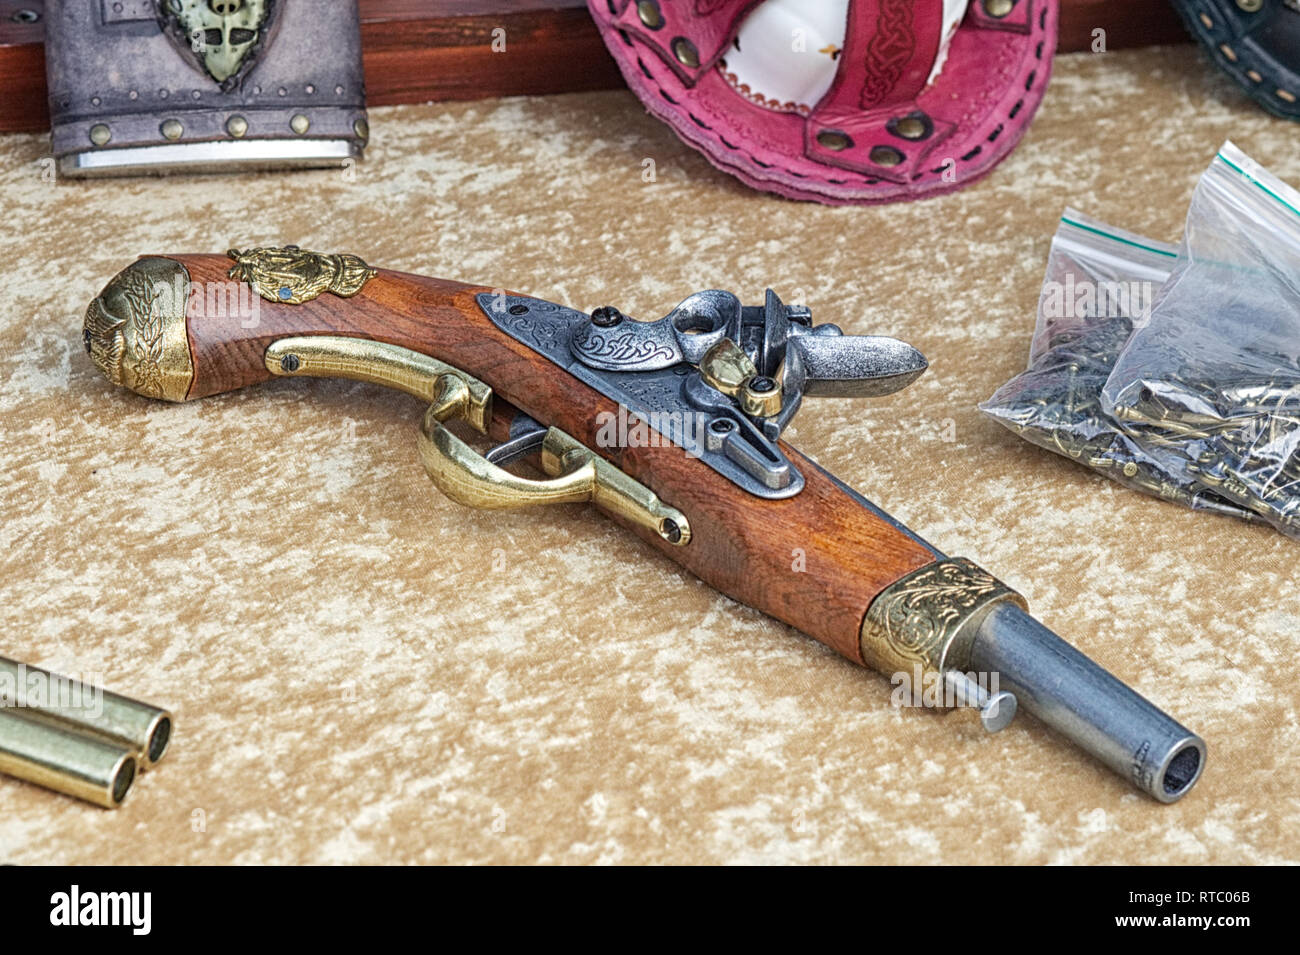 steampunk weaponry on display - Stock Image